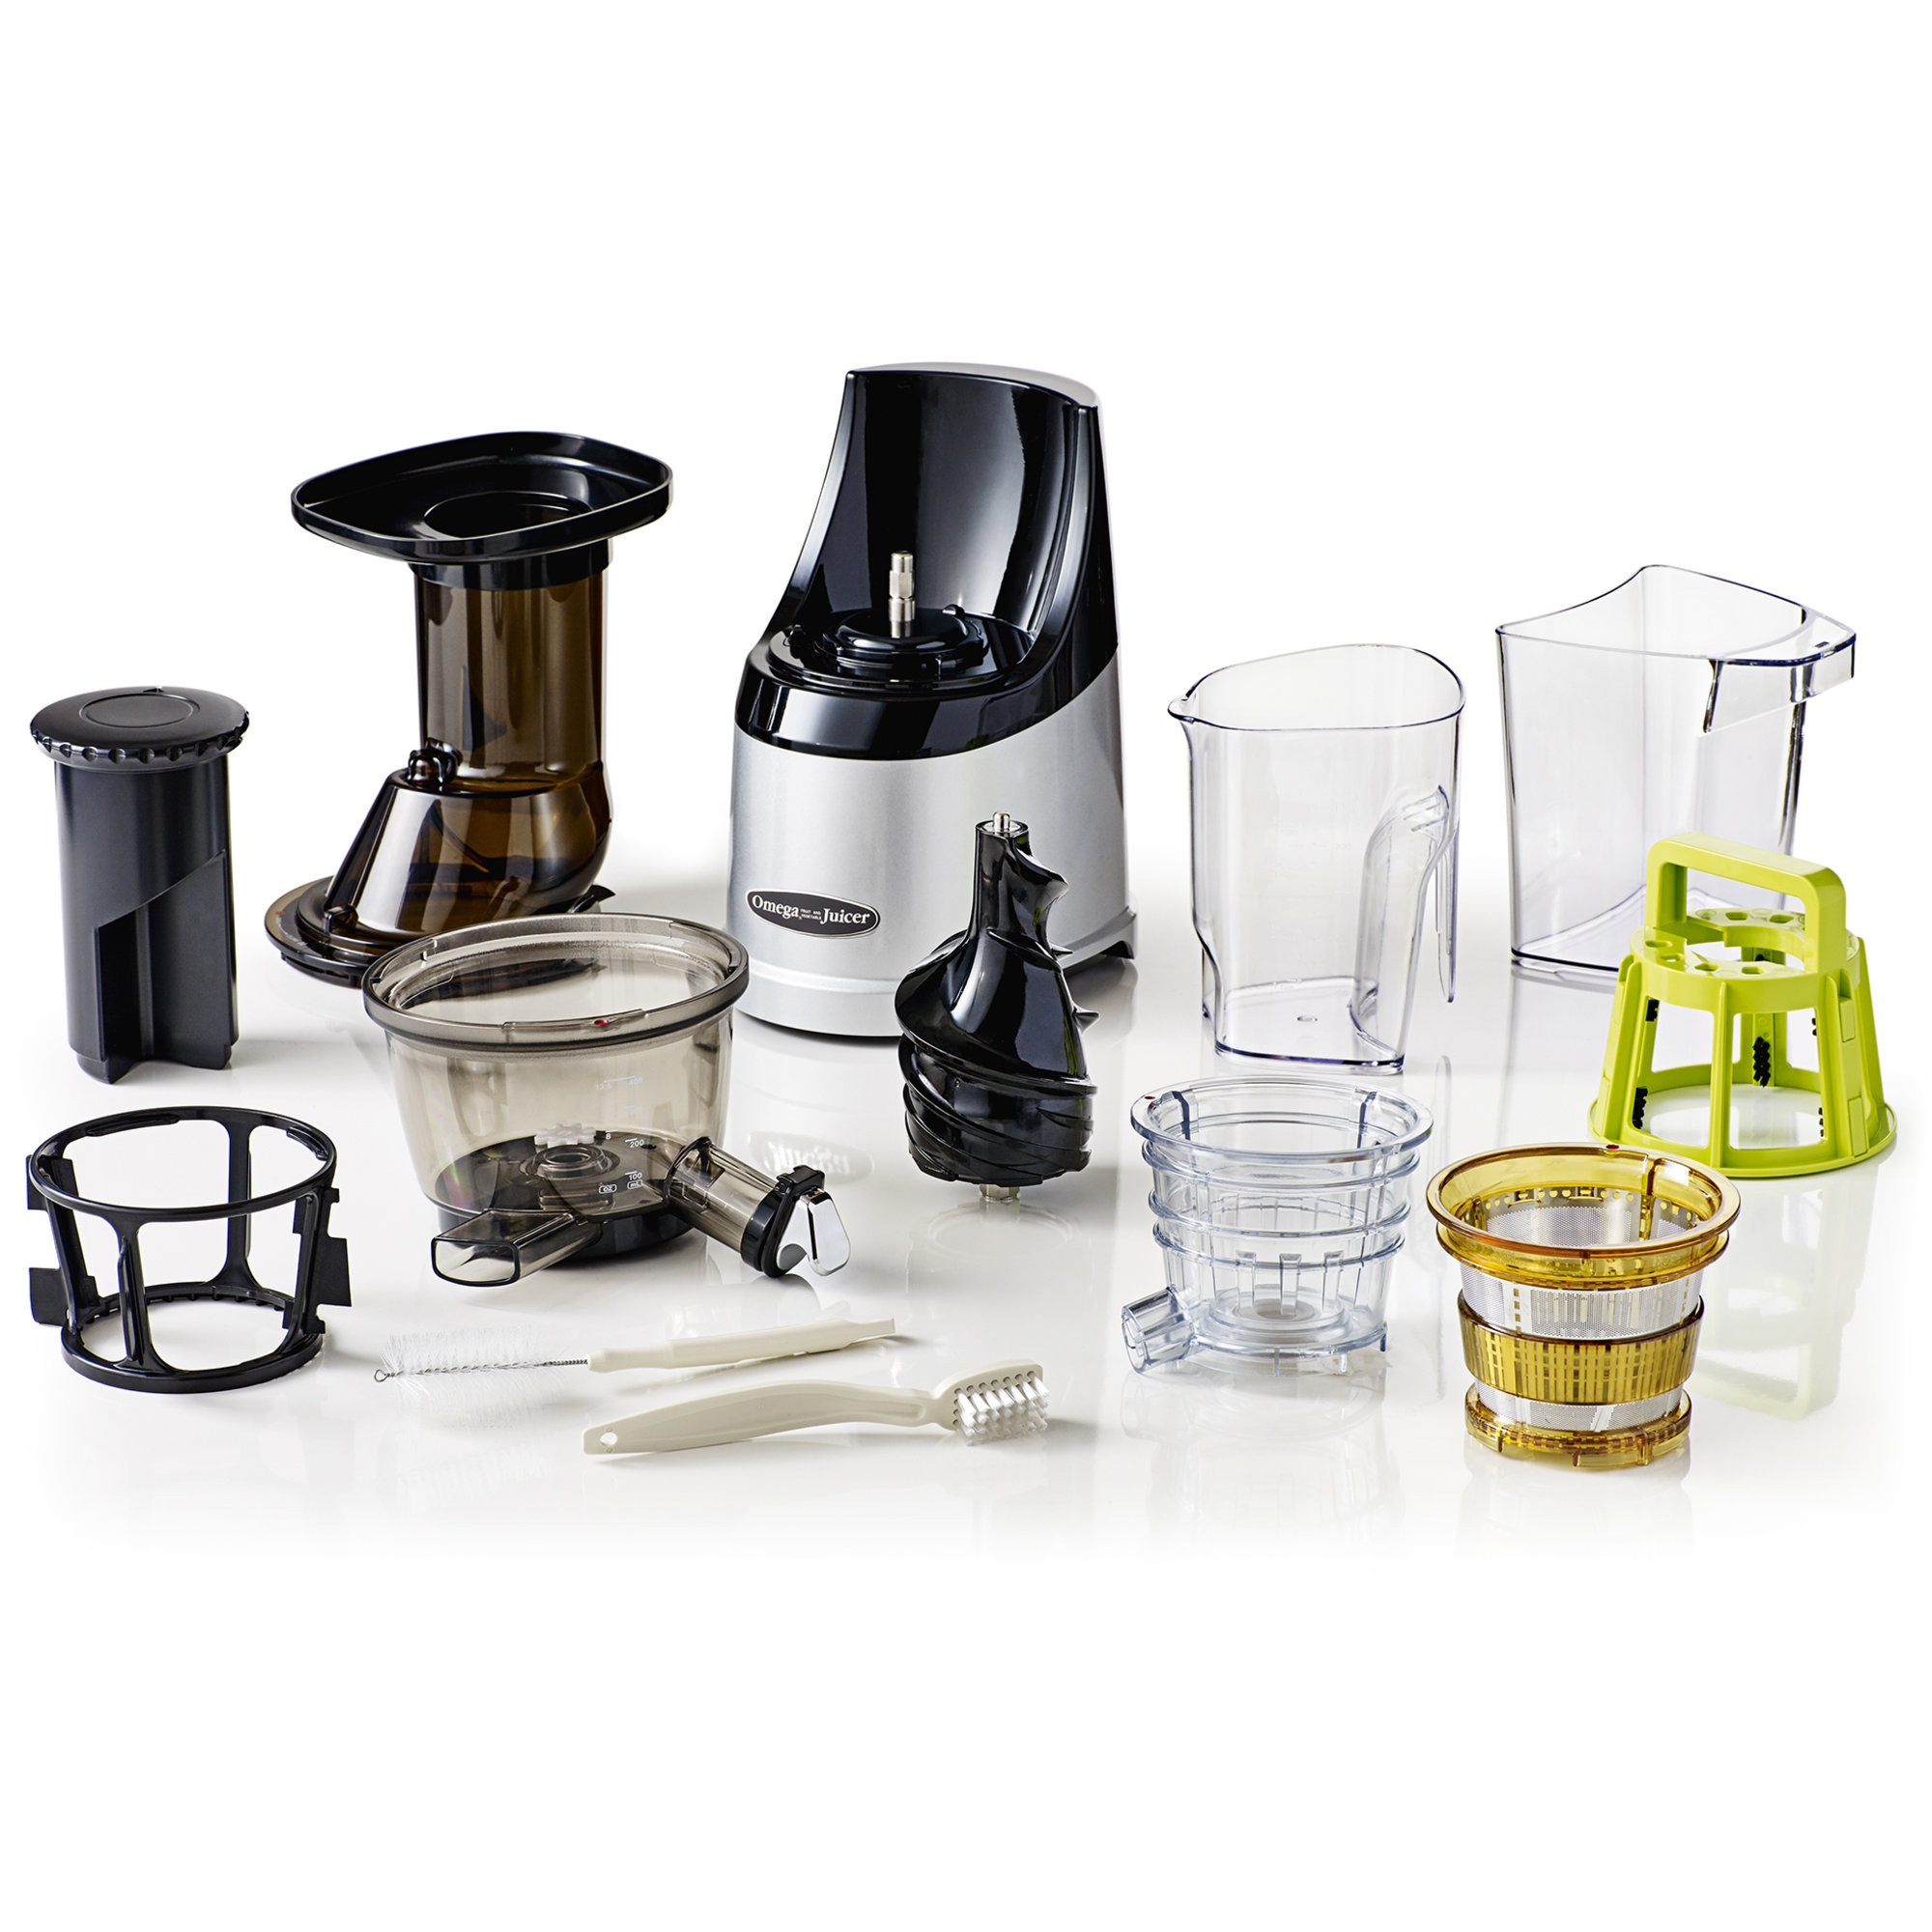 Omega Mega Mouth Whole Slow Juicer : MM702 MegaMouth Slow Juicer fra Omega Gratis Levering